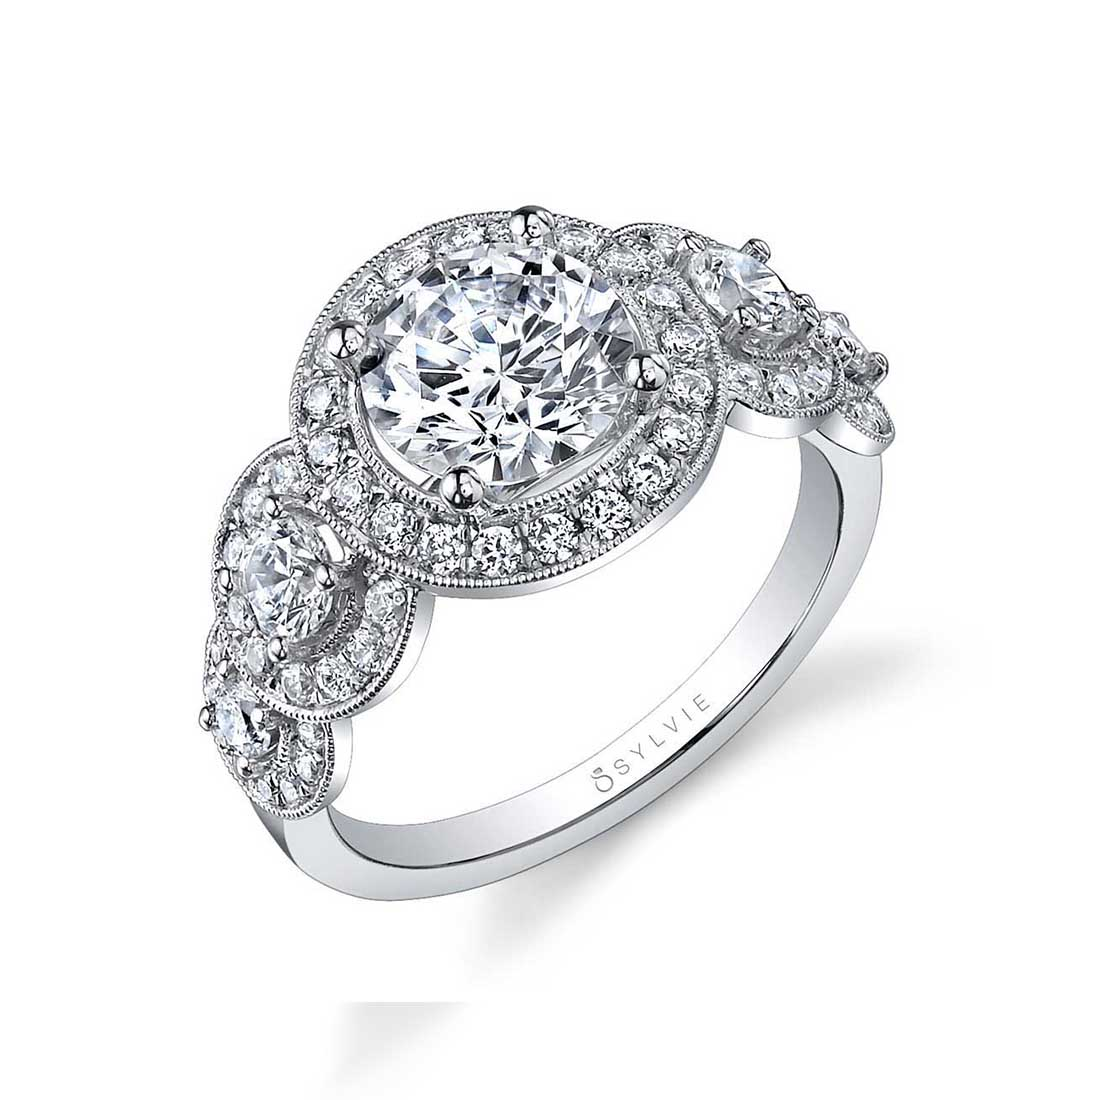 Side view of Vintage Inspired 5 Stone Engagement Ring-SY878S-RB